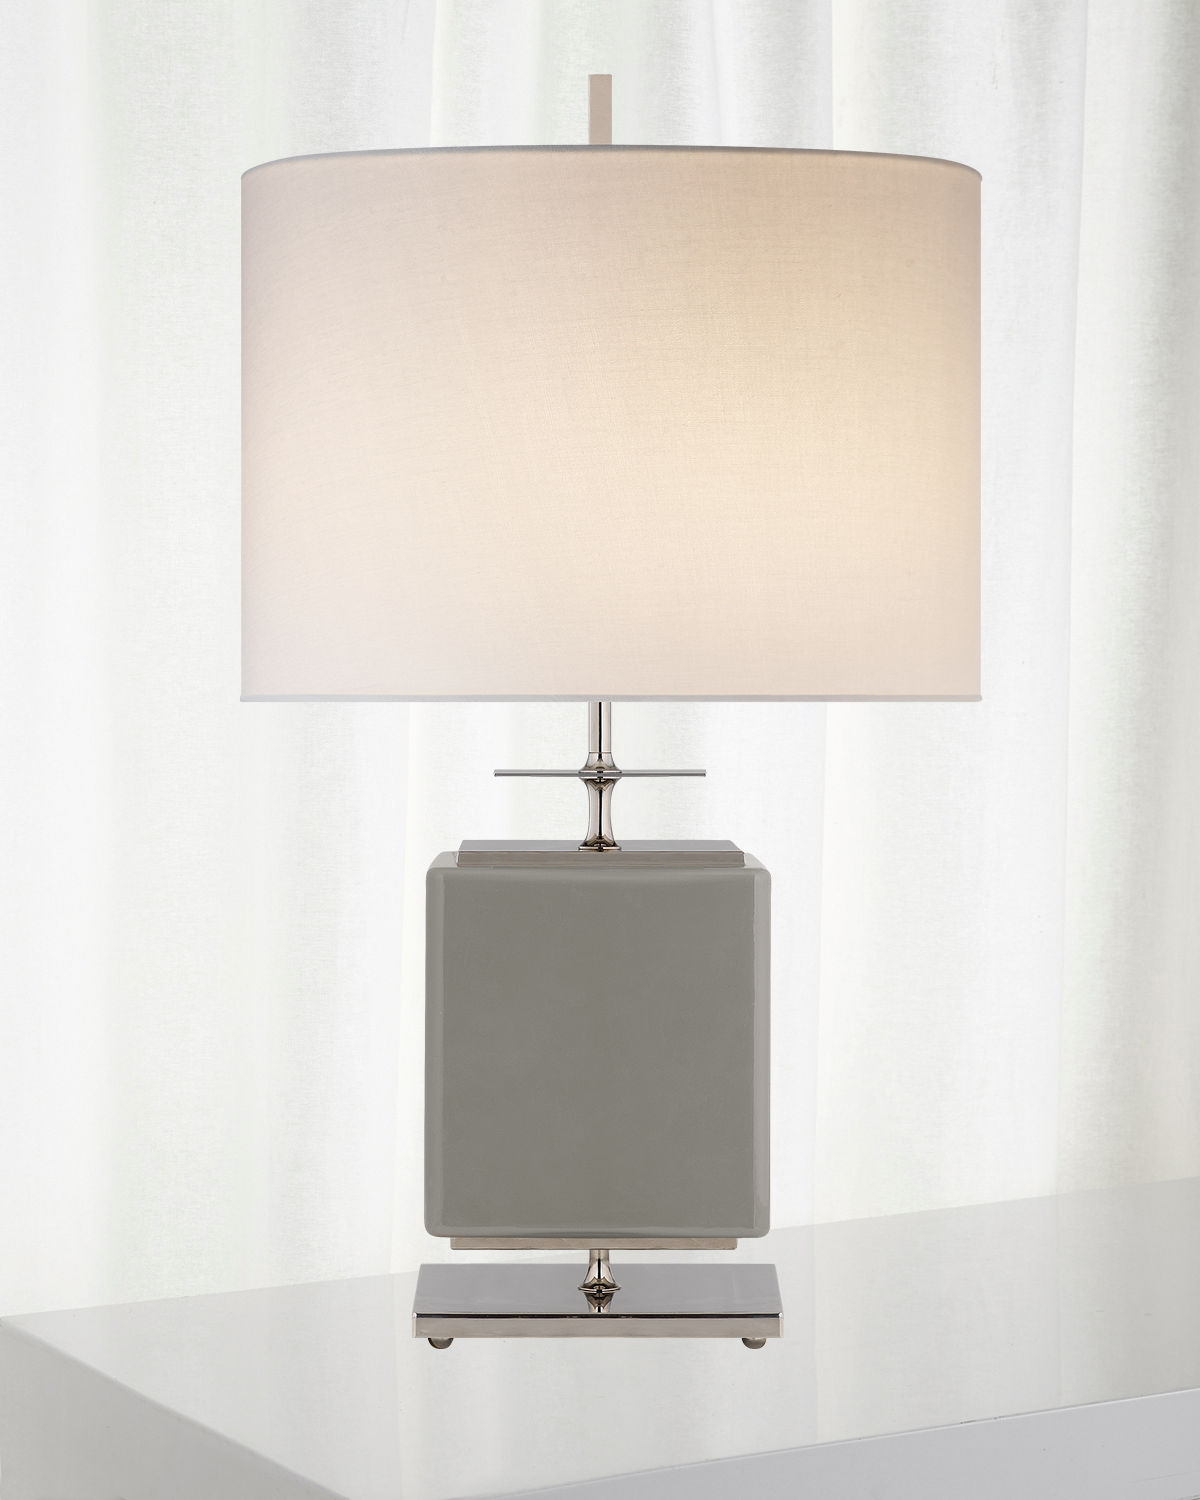 Kate Spade BEEKMAN SMALL TABLE LAMP